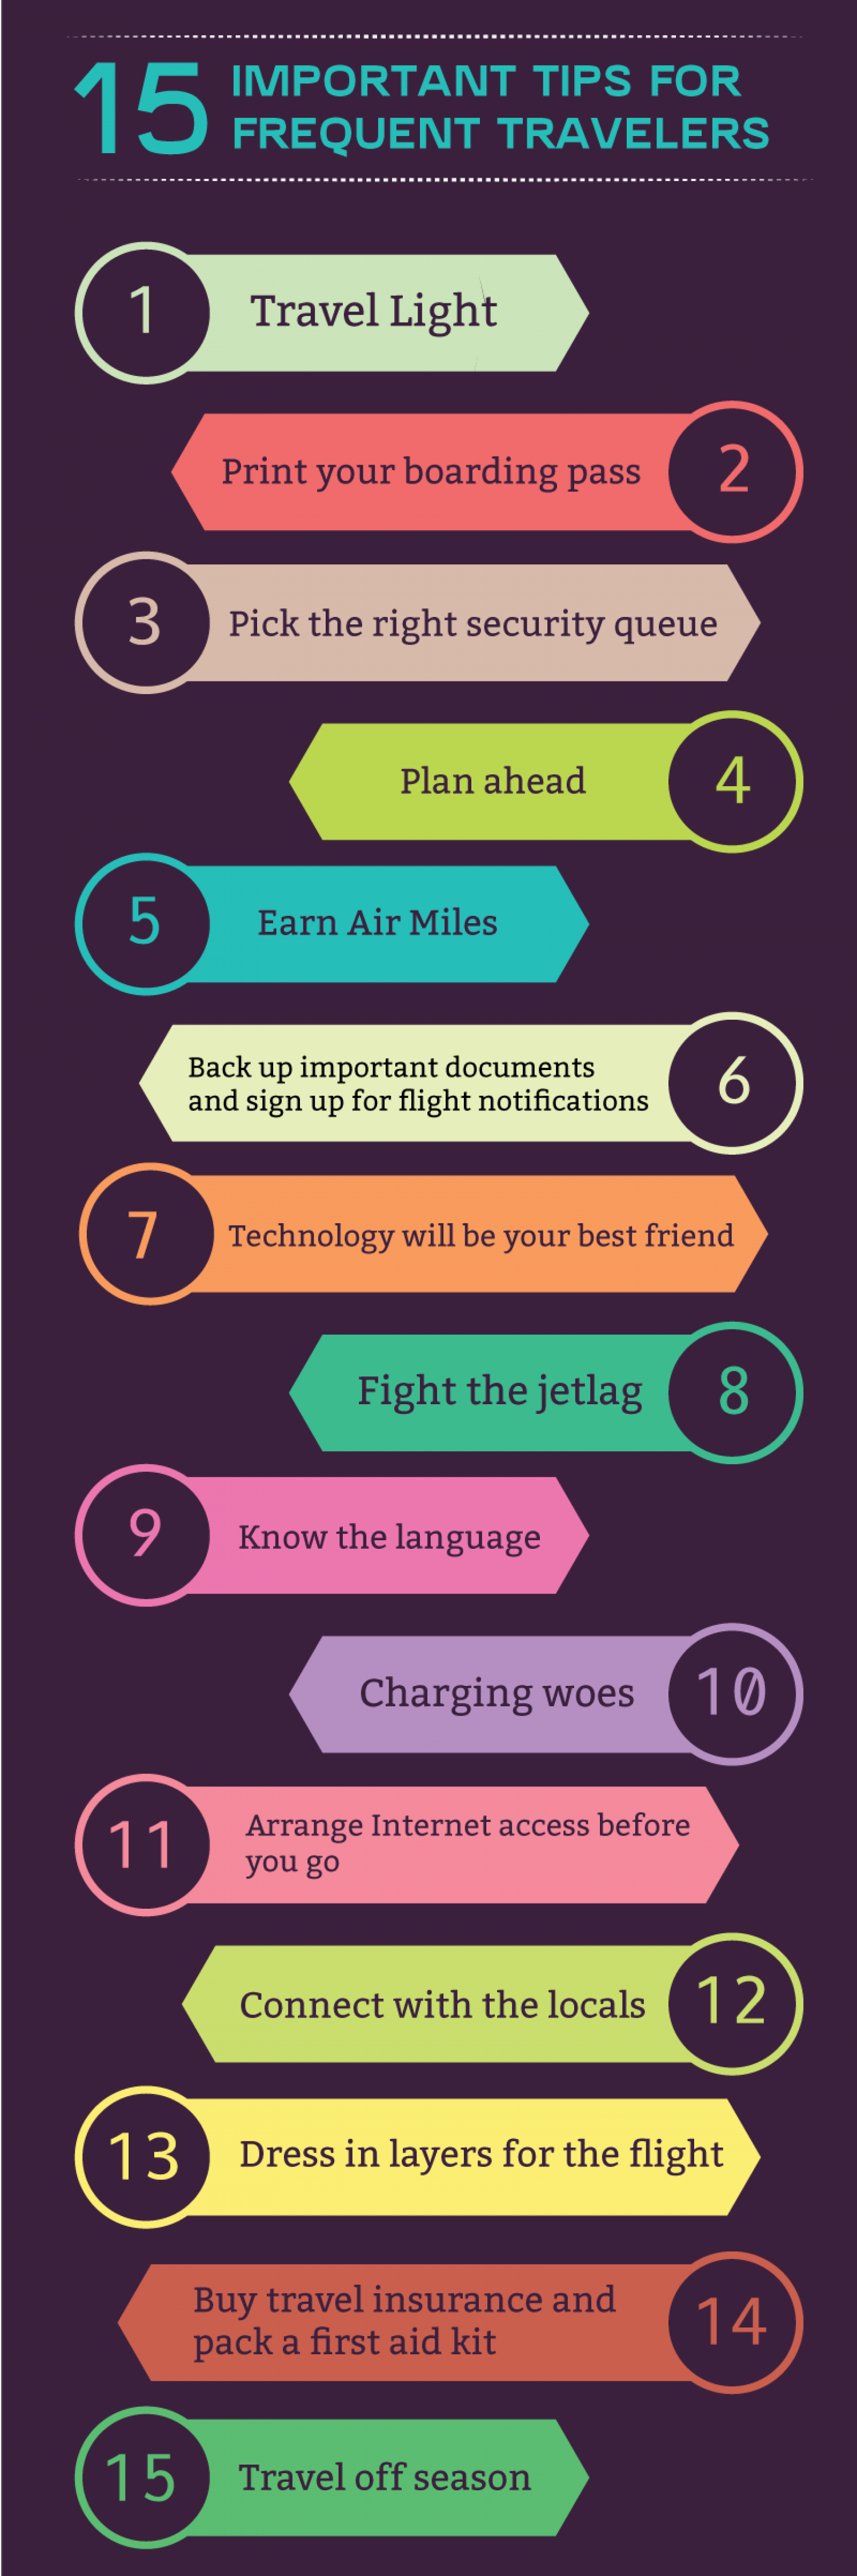 15 IMPORTANT TIPS FOR FREQUENT TRAVELERS Infographic